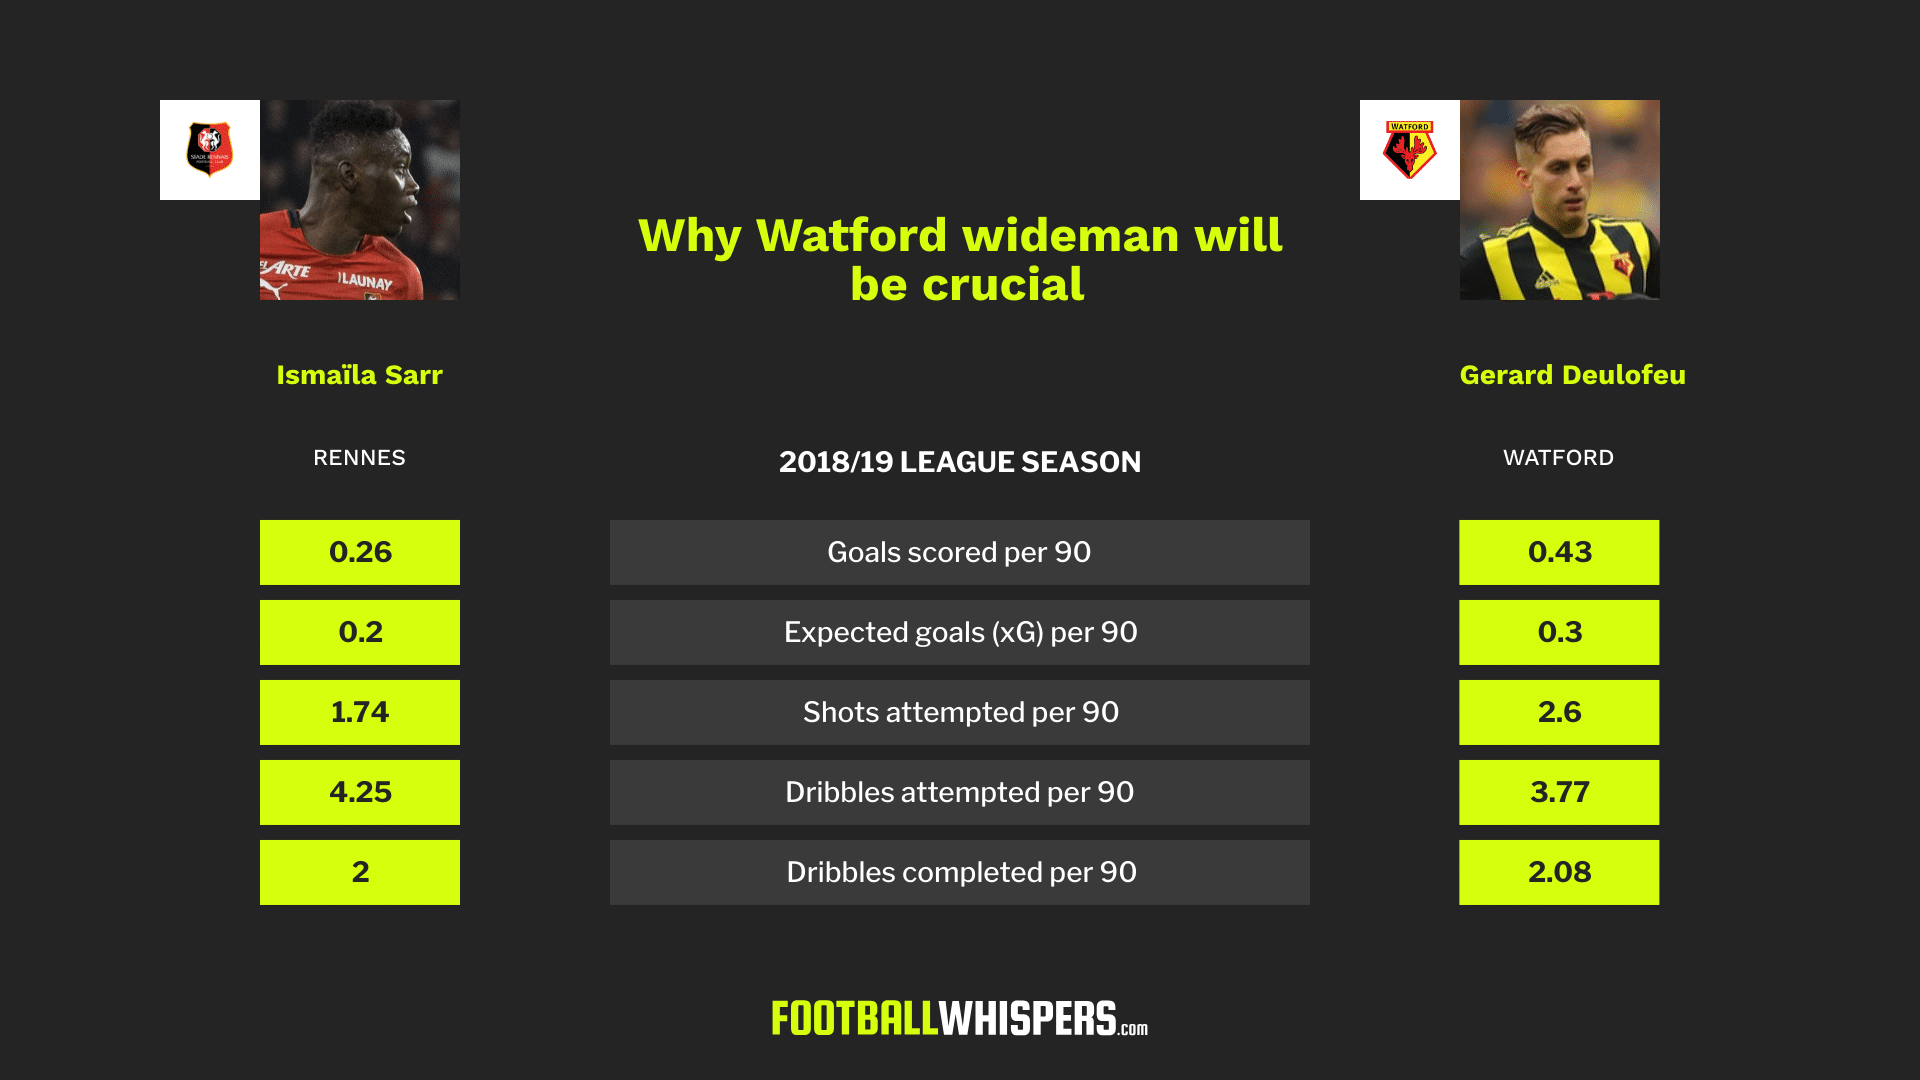 Watford wingers Ismaïla Sarr and Gerard Deulofeu will be key for Quique Sánchez Flores